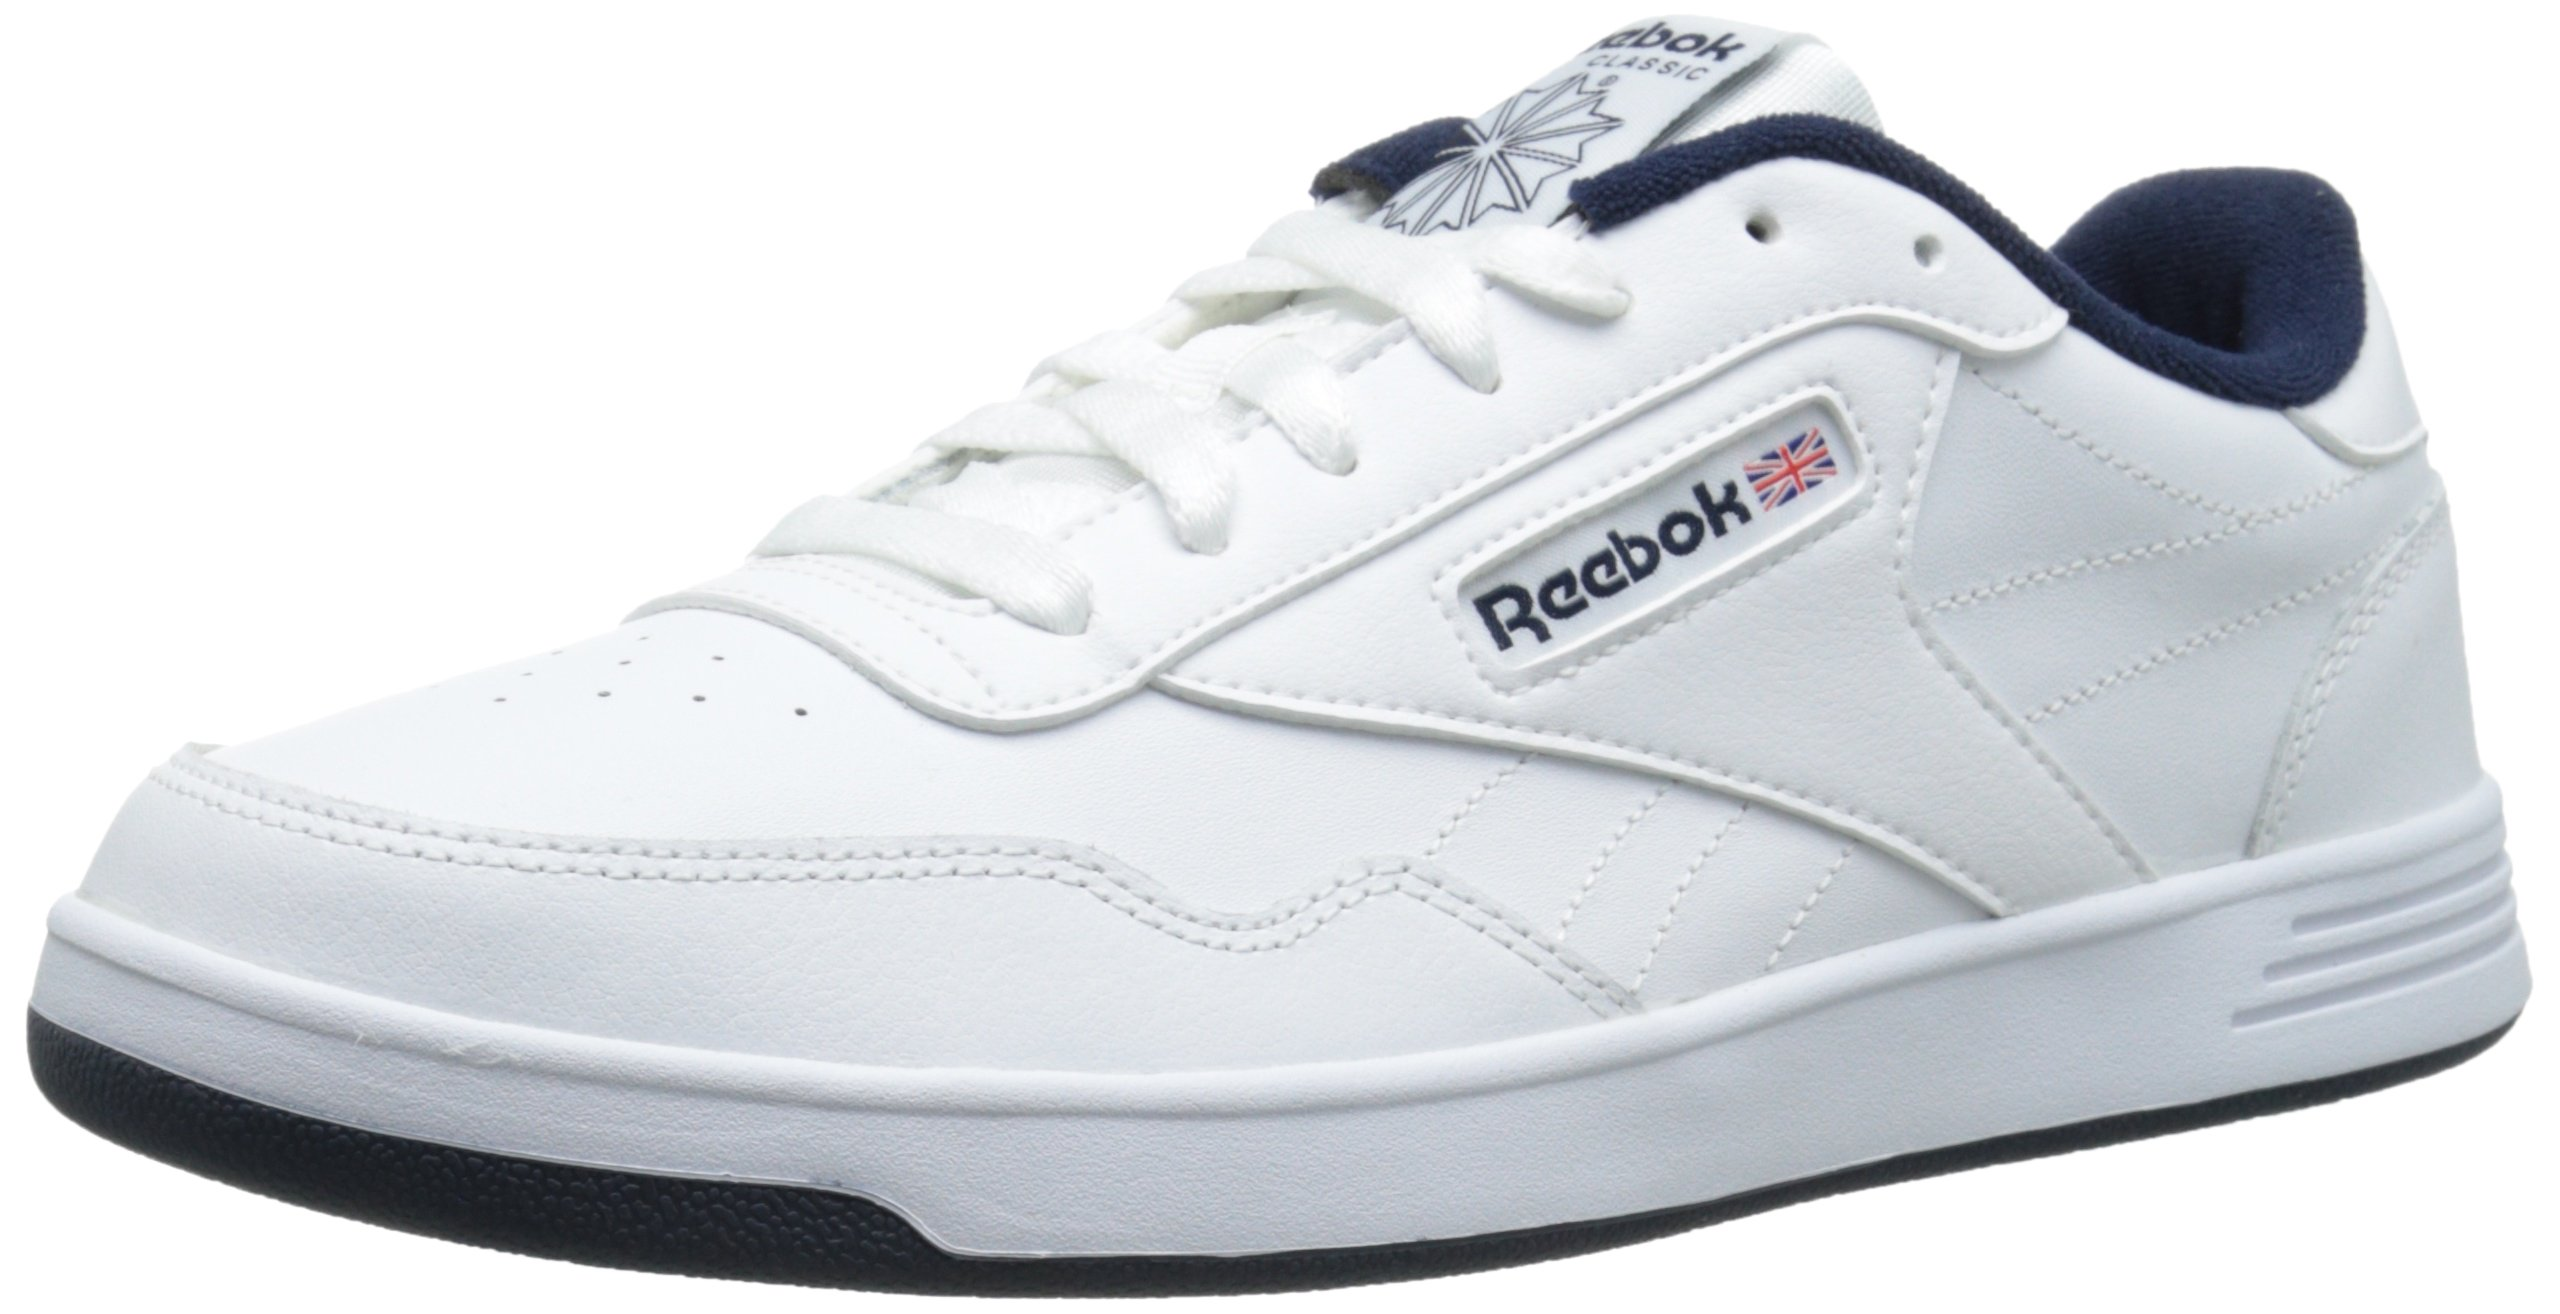 Reebok Men's Club MEMT Fashion Sneaker, White/Collegiate Navy, 10.5 M US by Reebok